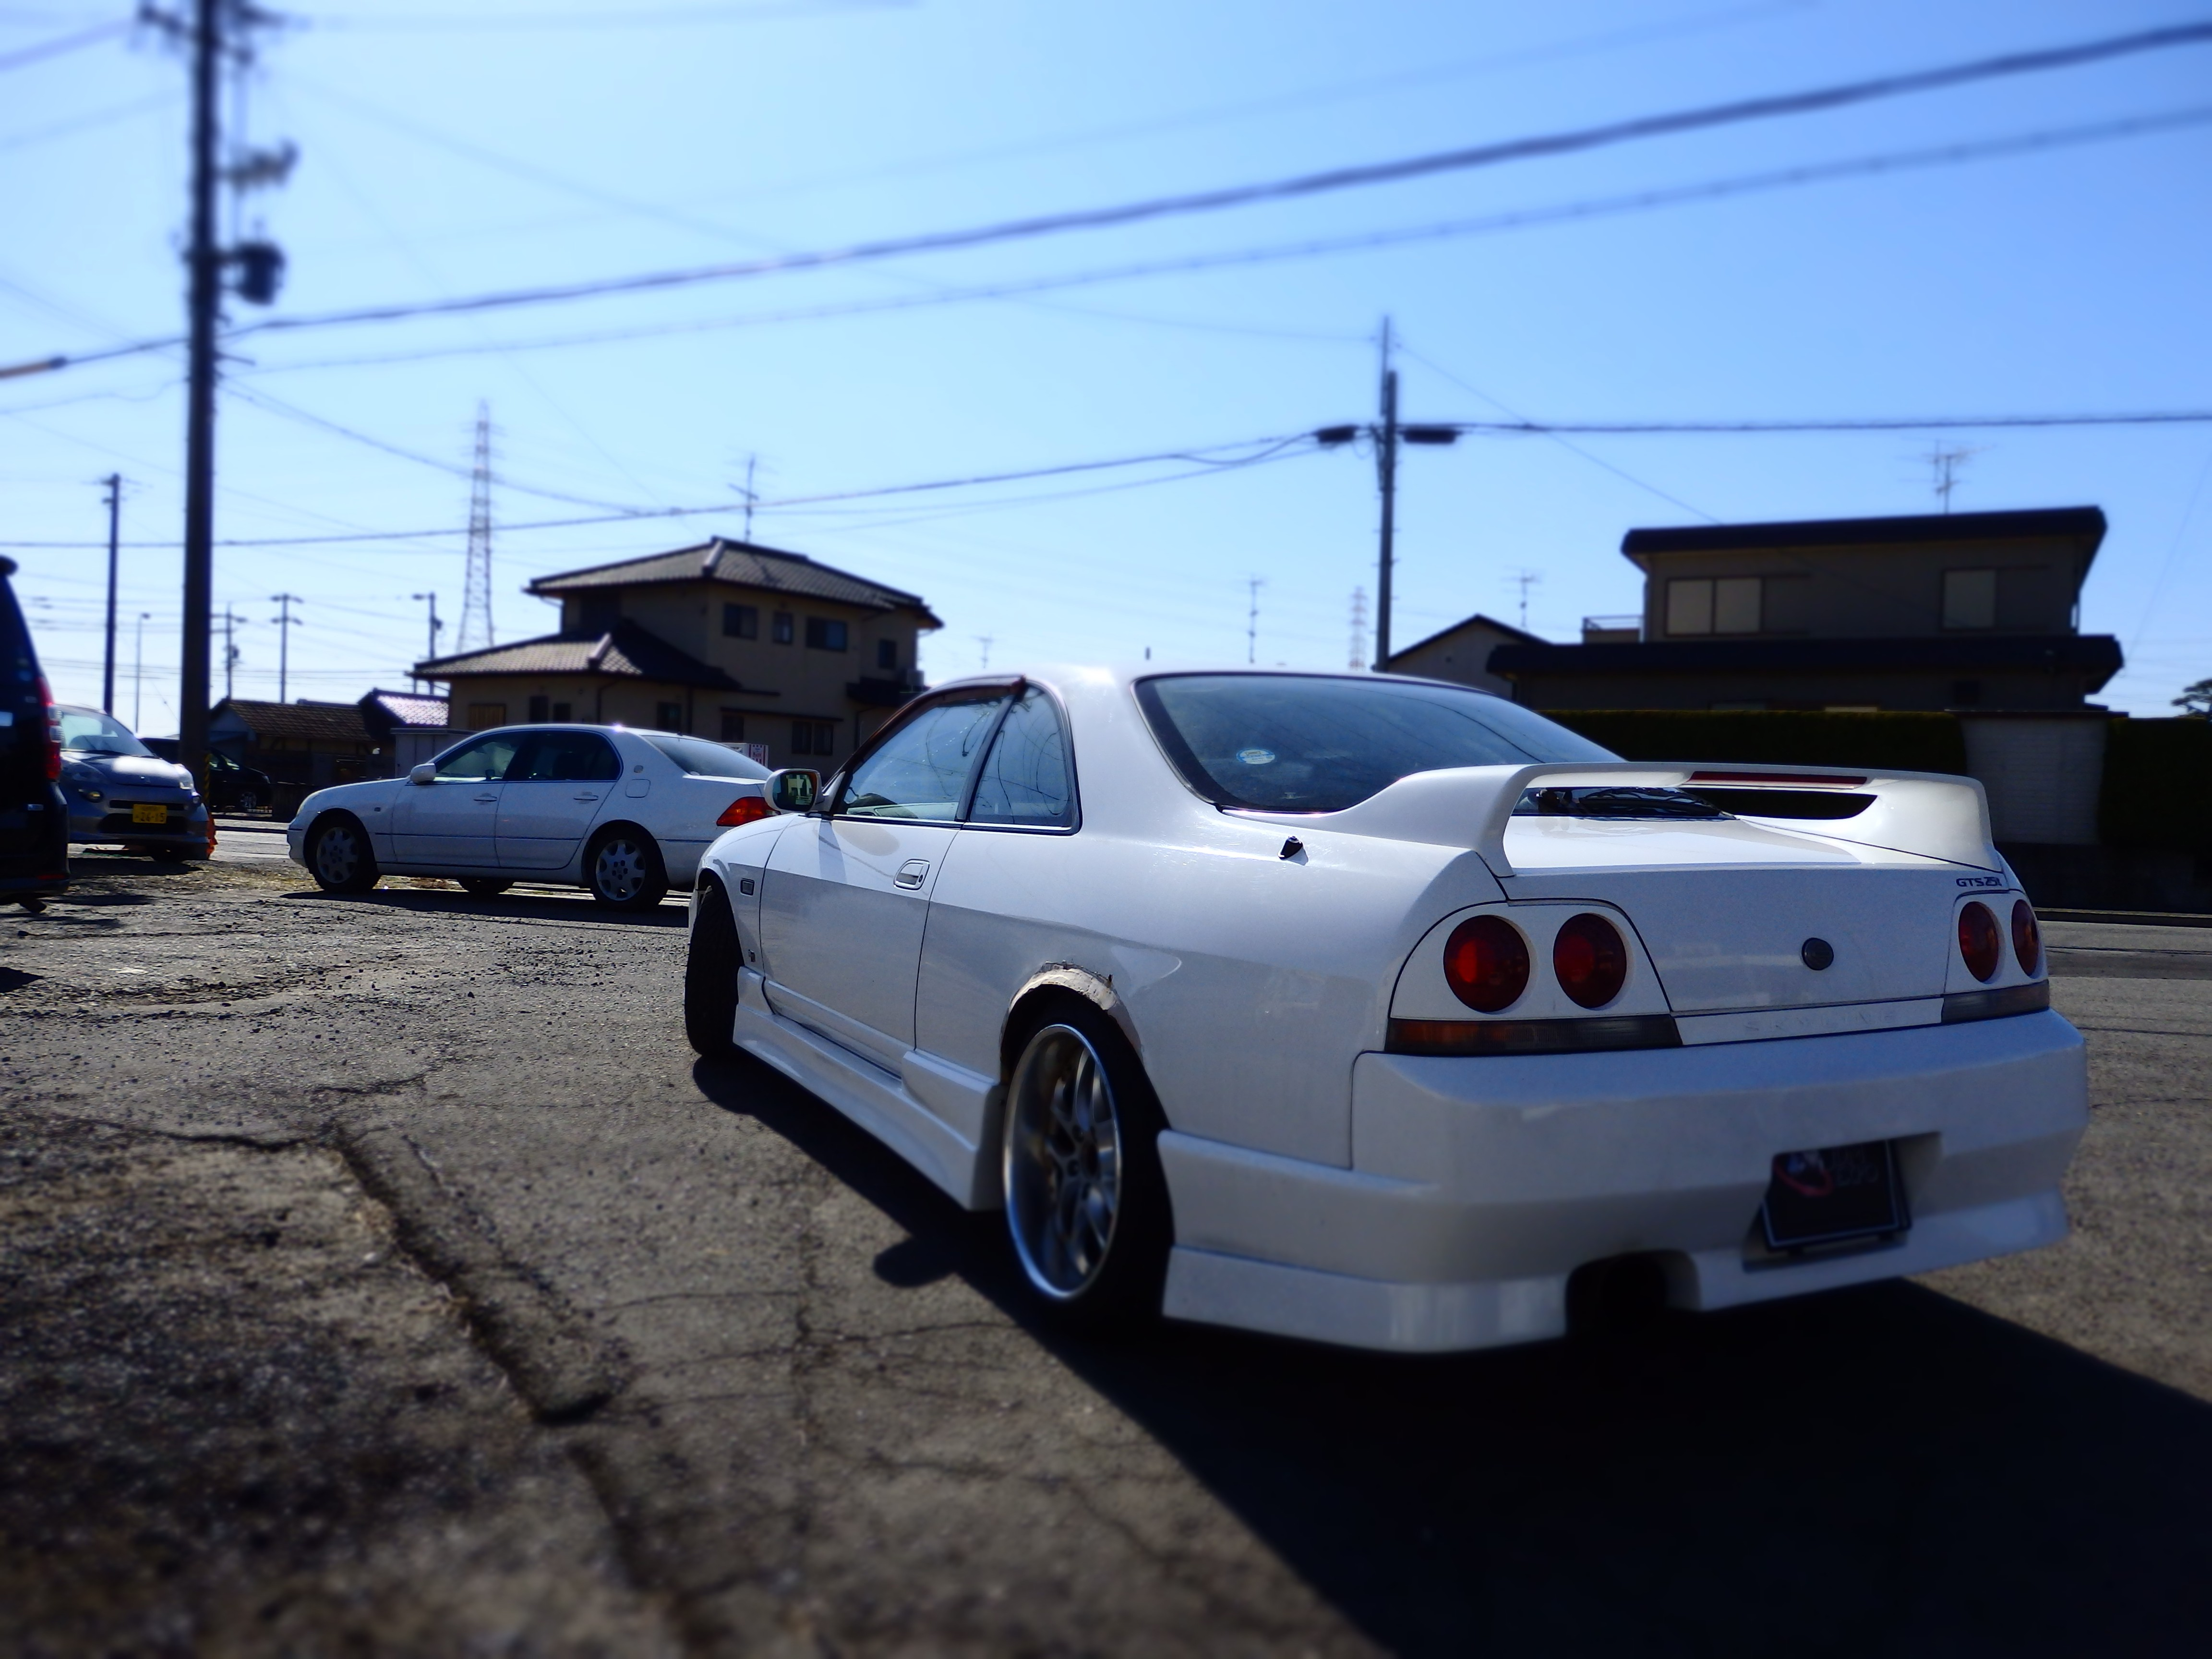 Nissan skyline r33 for sale